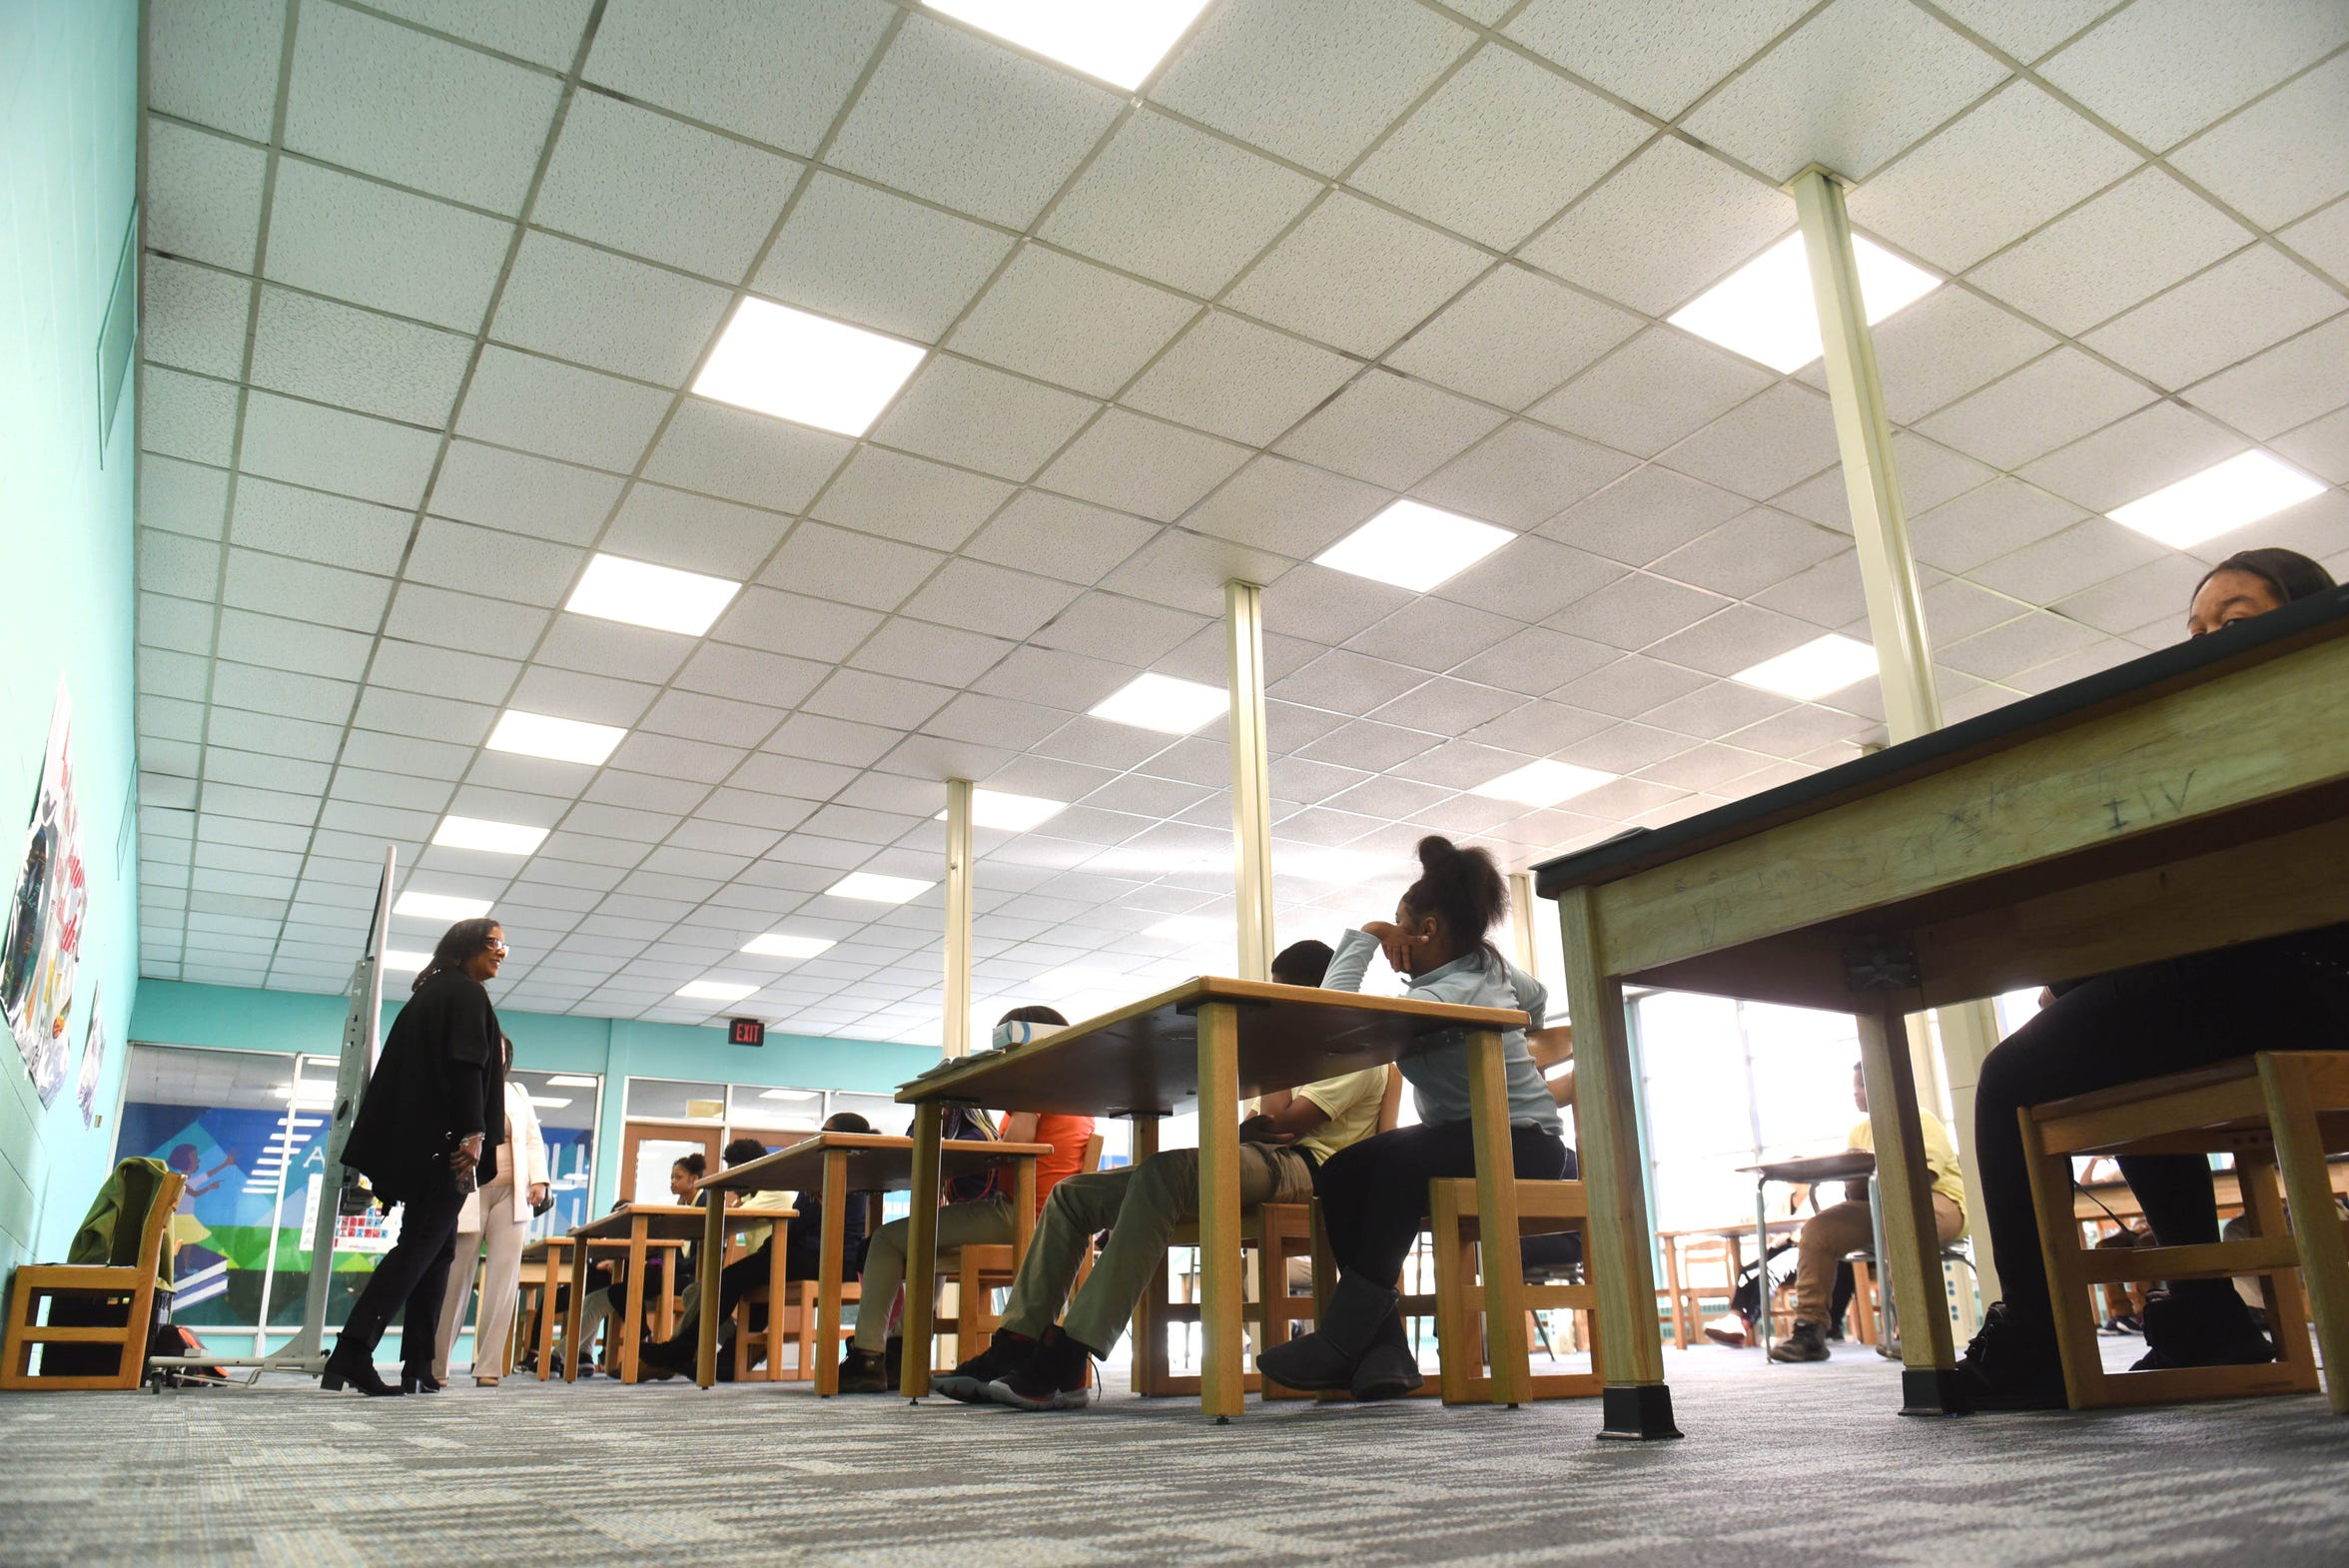 Palmer Park Preparatory Academy students prepare for a test in the professional learning center. The school  recently installed LED lighting, drop ceiling and carpeting, but according to a 2018 assessment, needs $25.87 million in facilities repairs.